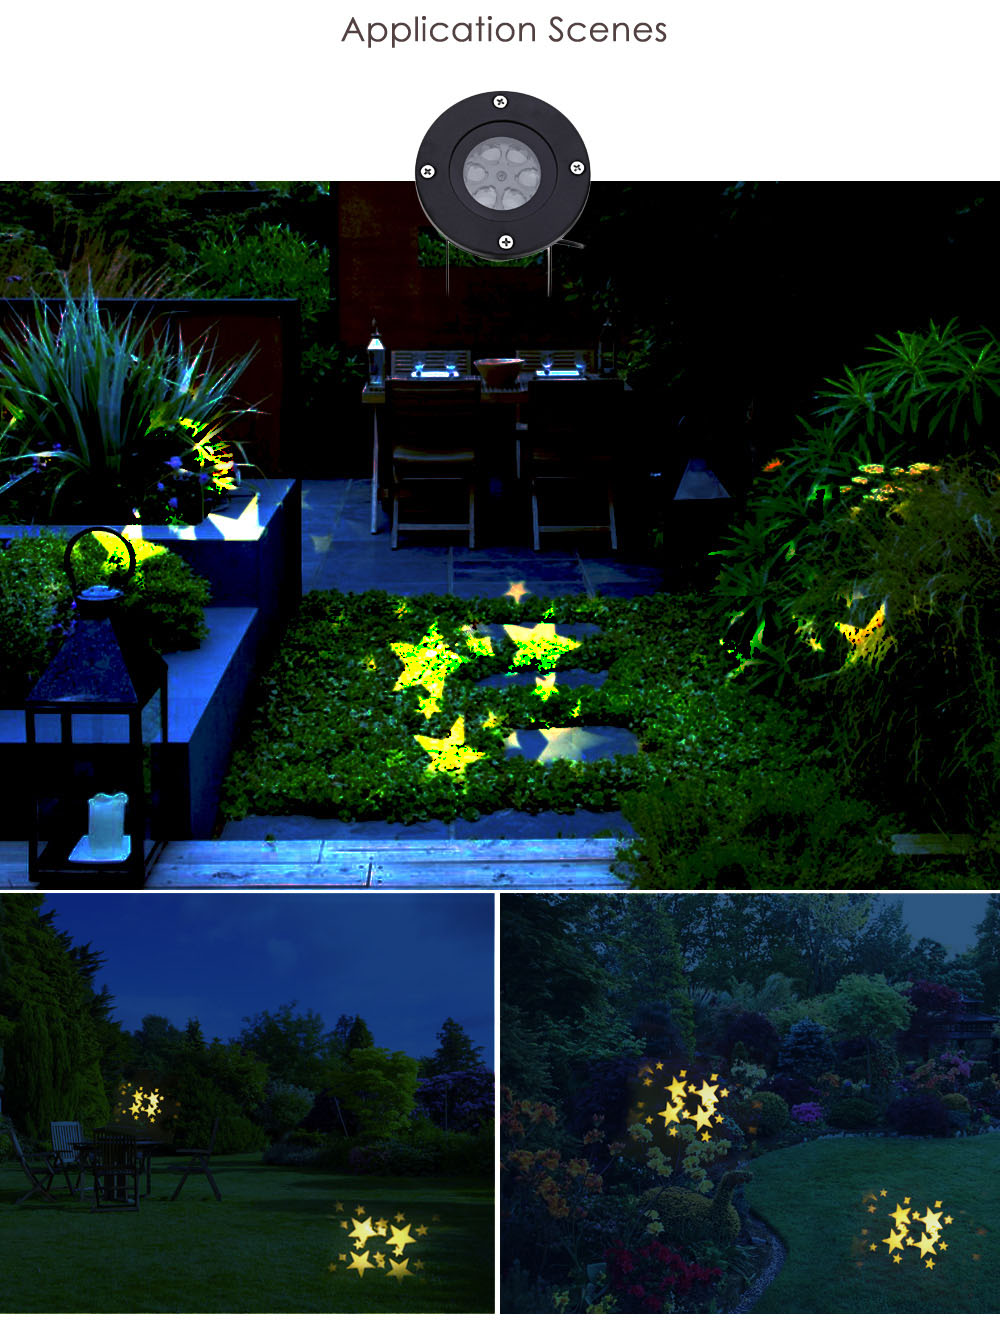 100 - 240V 4W LED Waterproof Star Light Landscape Projector Lamp for Outdoor